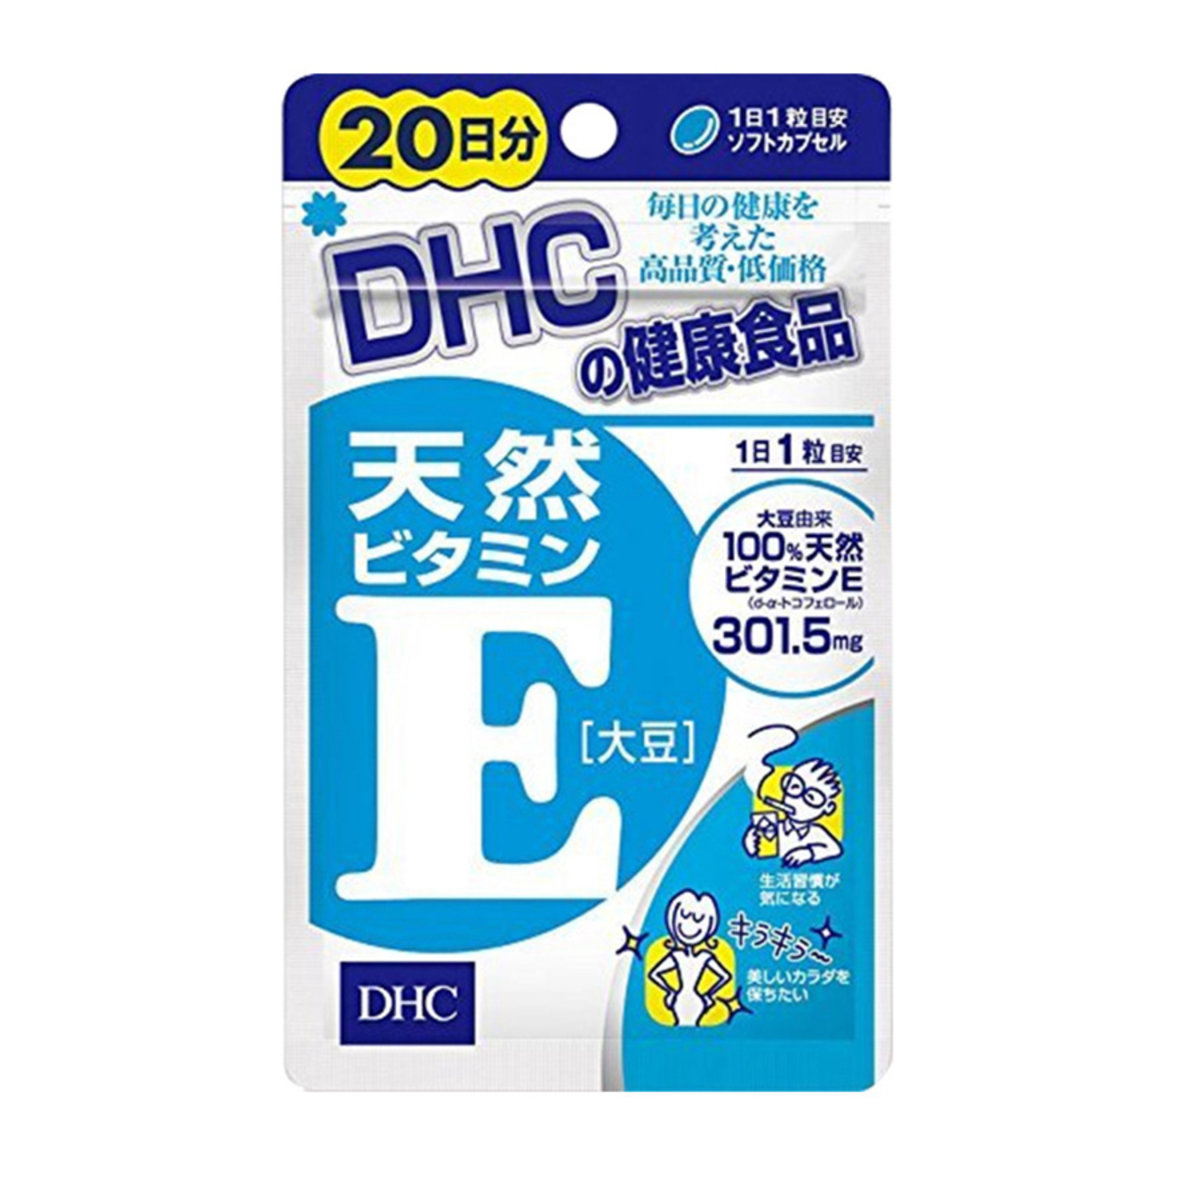 DHC Vitamin E Supplement 20 days 20 tablets (Parallel Import)